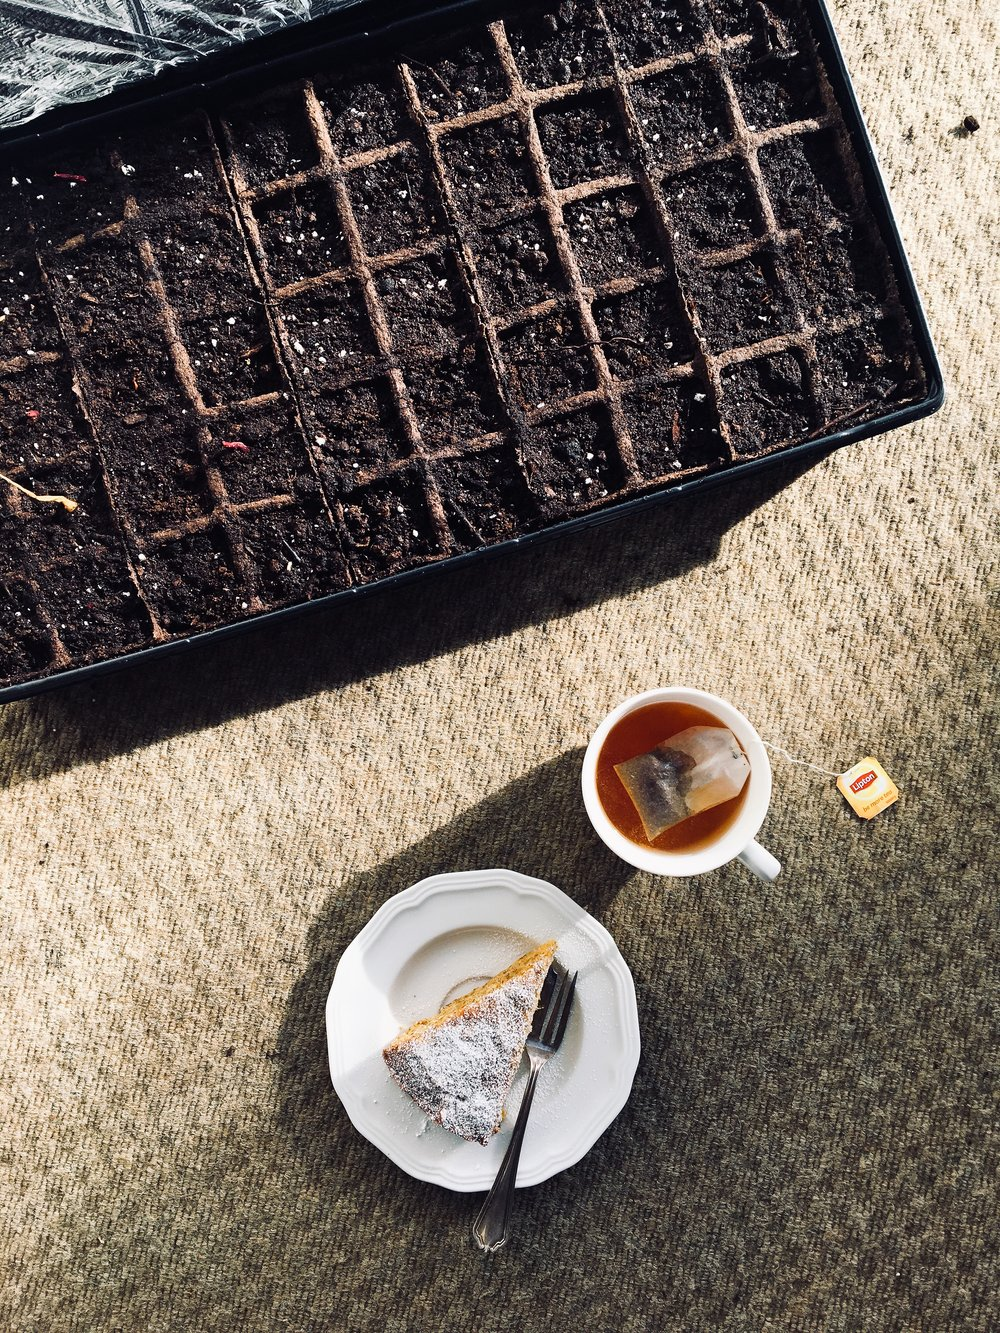 Insta Stories - Follow along on Stories on my gardening journey